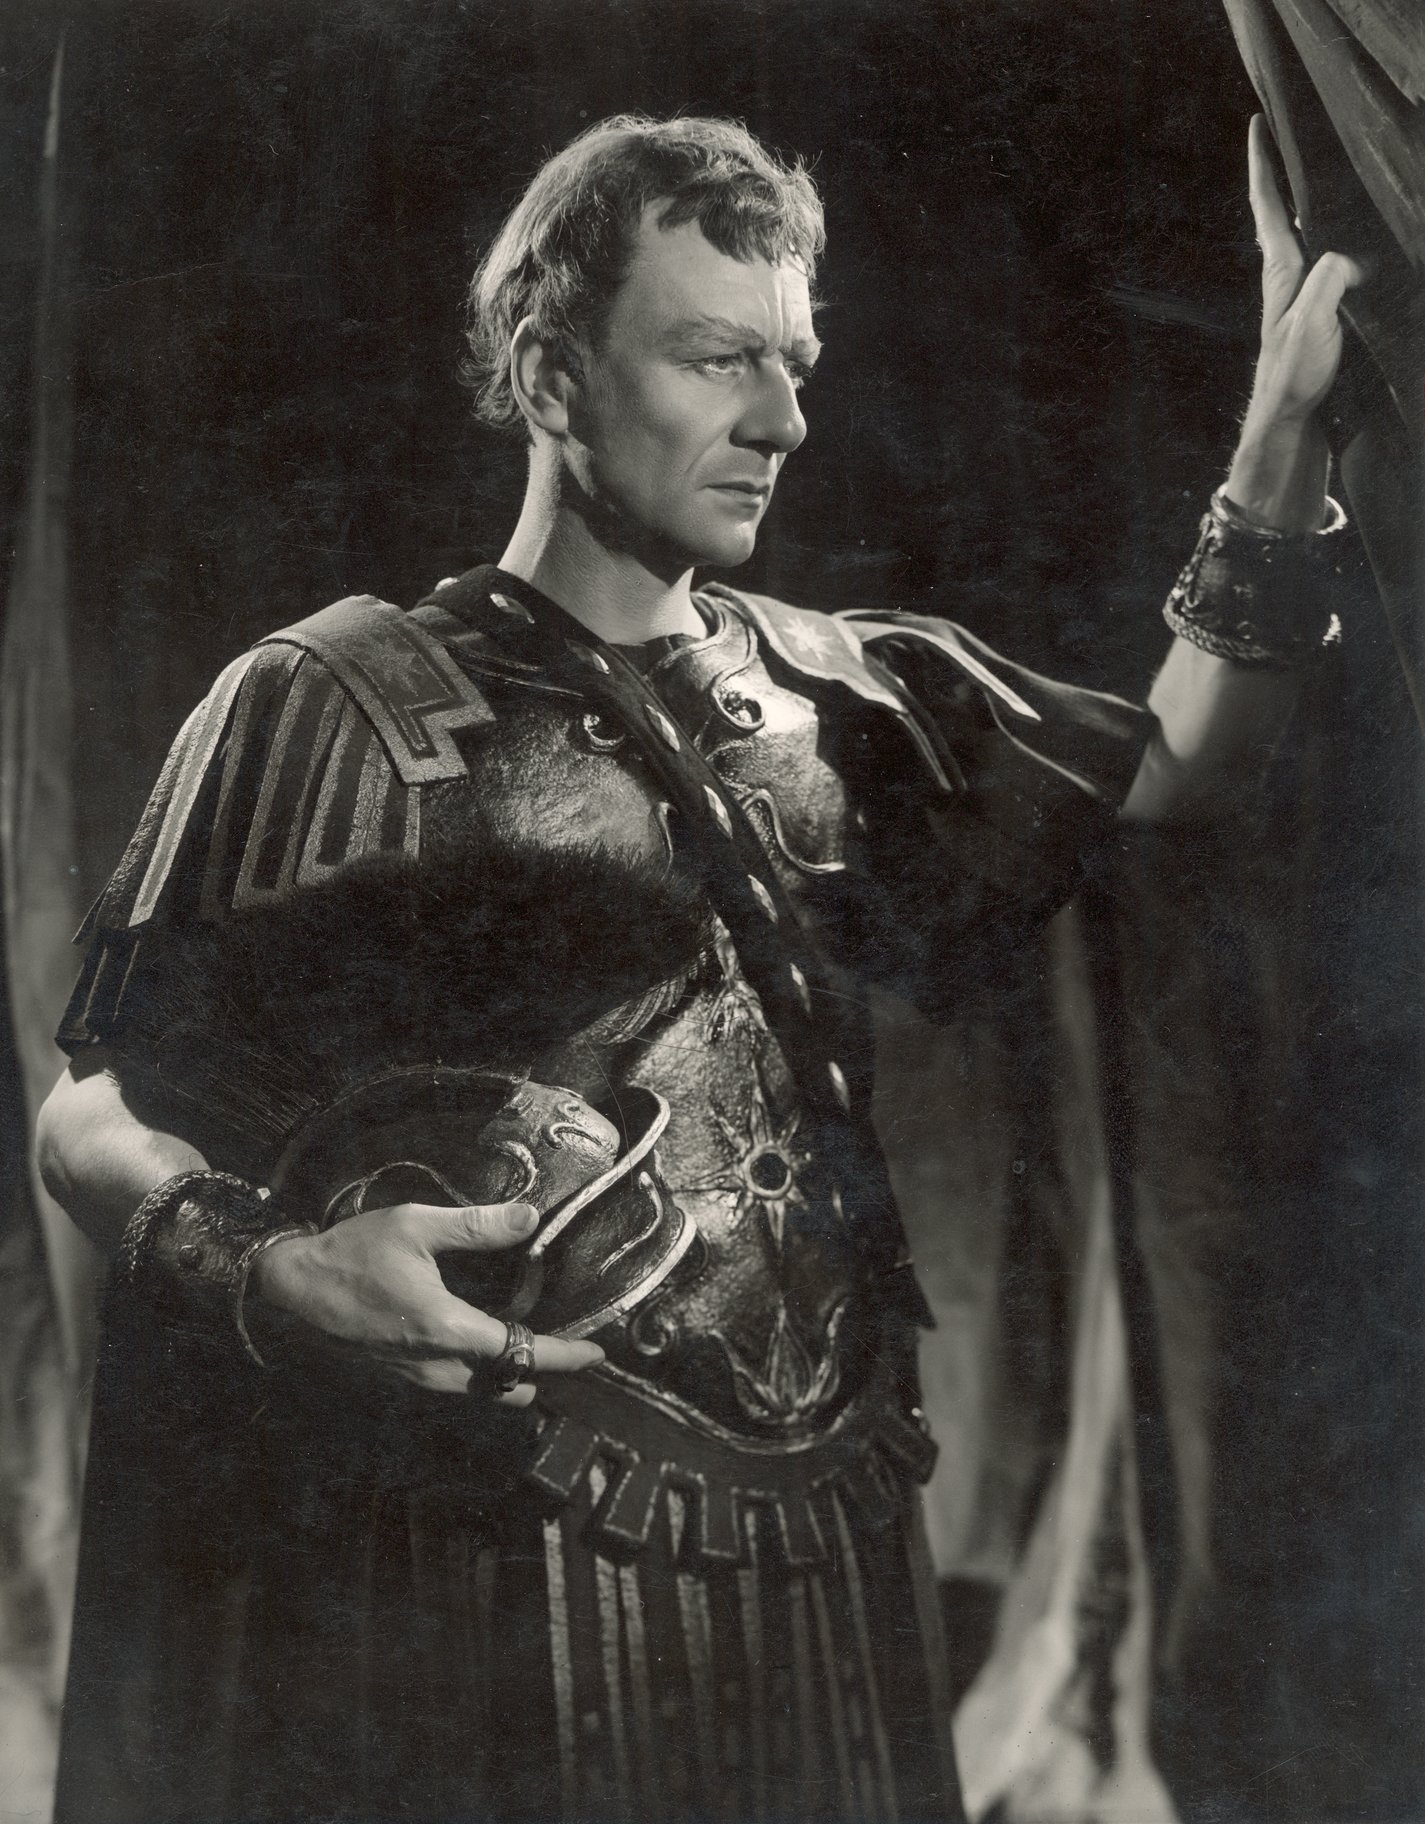 John Gielgus as Cassius, looking to the left, standing holding a helmet under his right arm